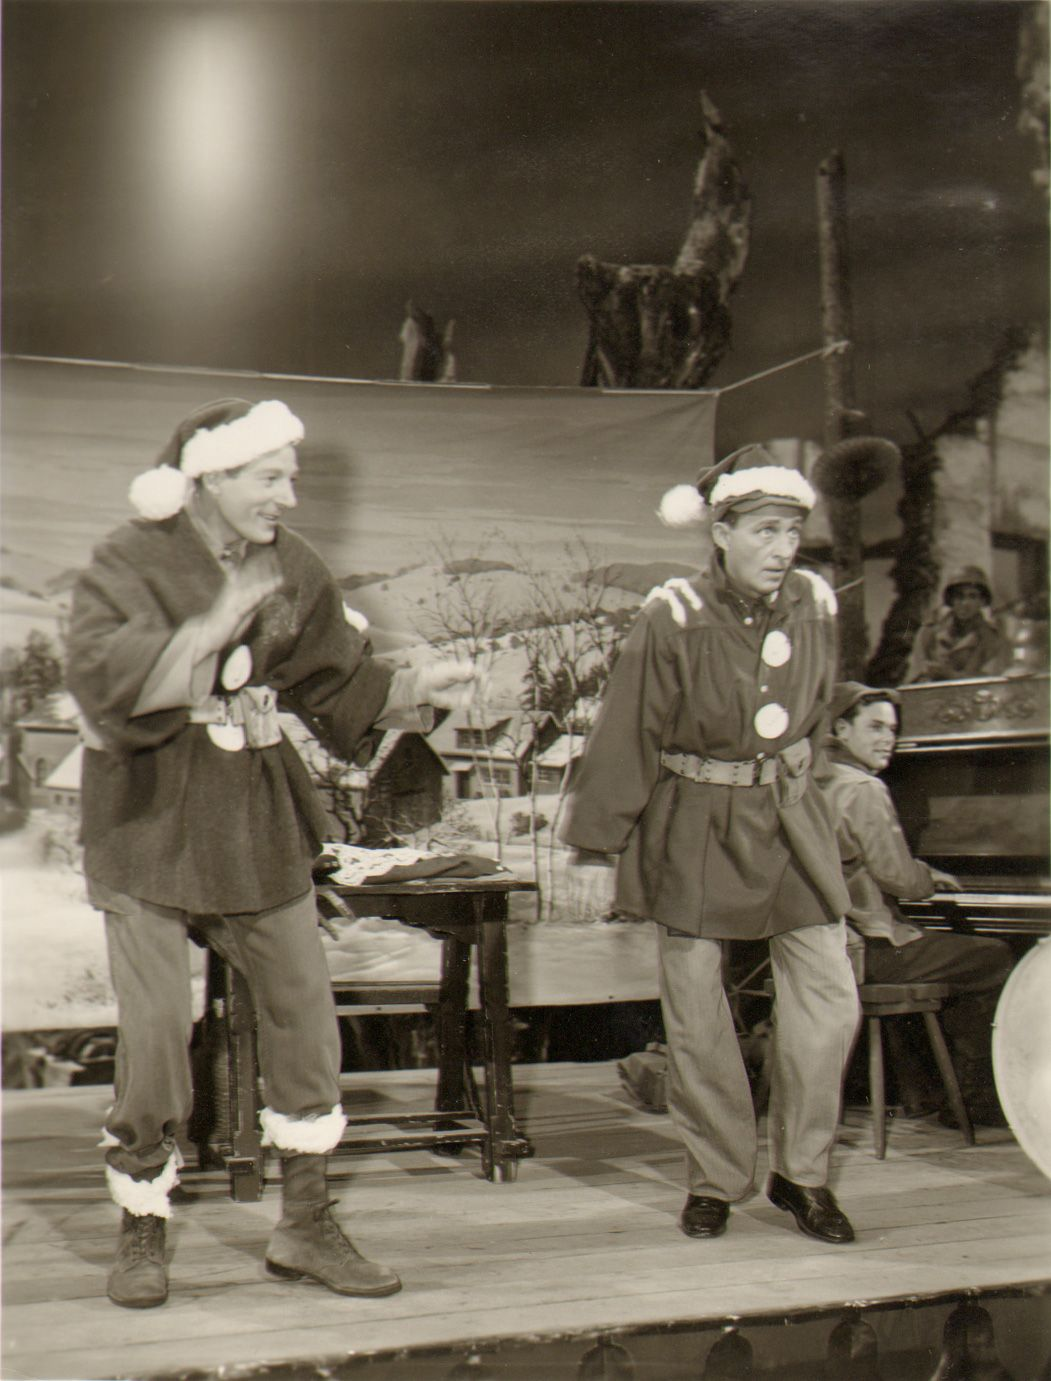 danny kaye and bing crosby on the set of white christmas white christmas movie - How Old Was Bing Crosby In White Christmas